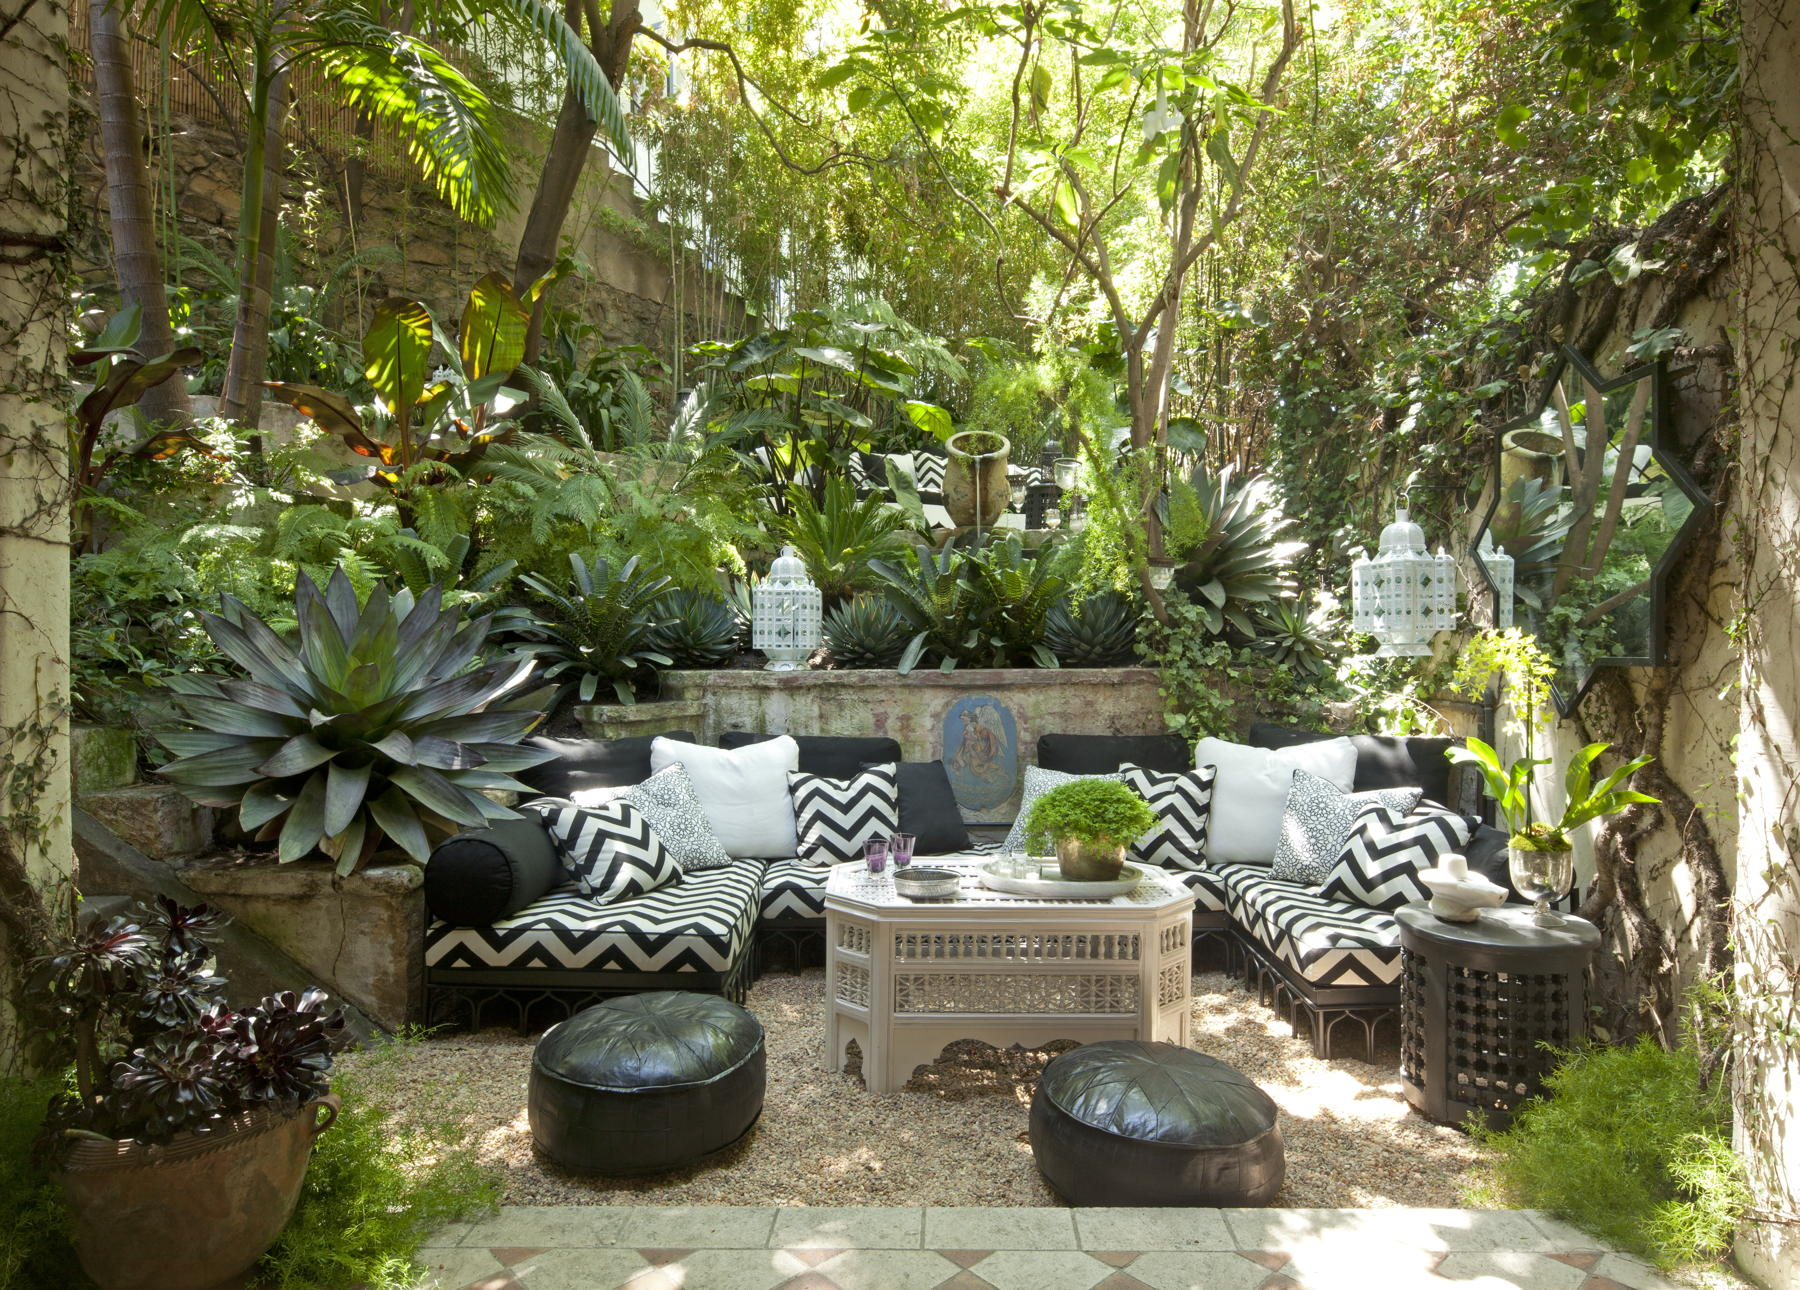 Garden seating at Villa Swanson in Hollywood, designed by Martyn Lawrence Bullard